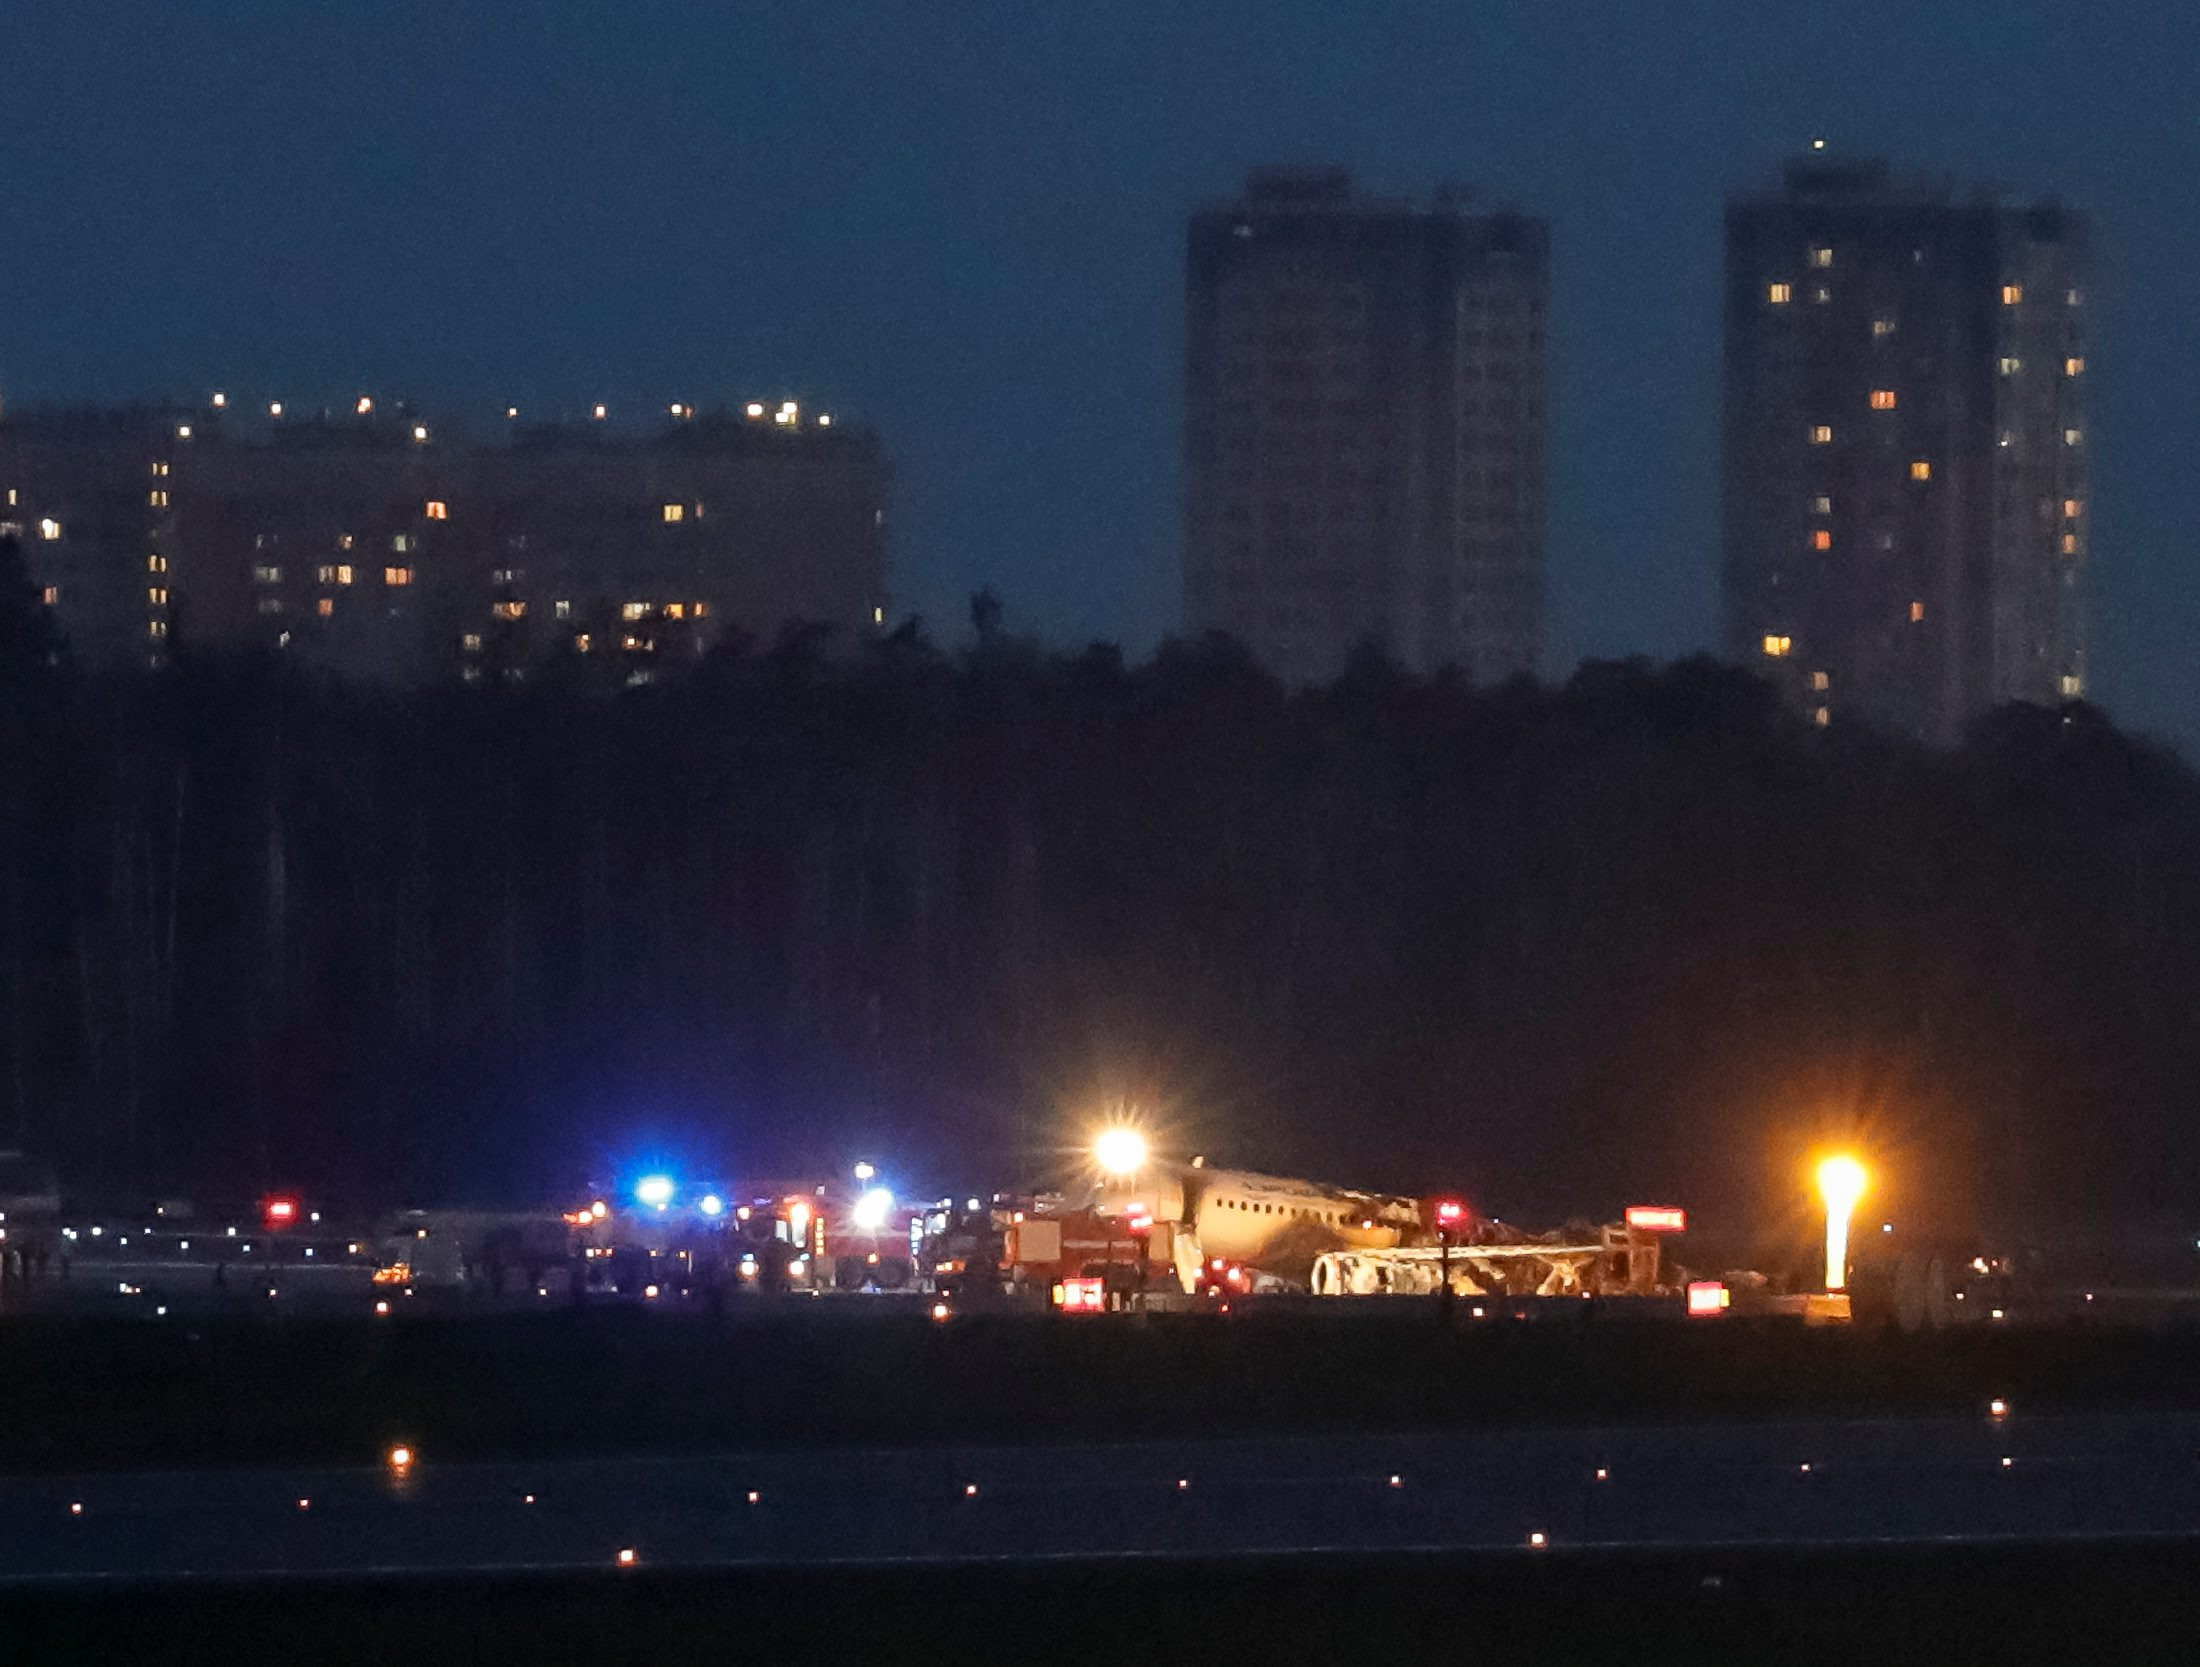 The wreckage of a passenger plane is seen after an emergency landing at the Sheremetyevo Airport outside Moscow, Russia May 5, 2019. REUTERS/Tatyana Makeyeva